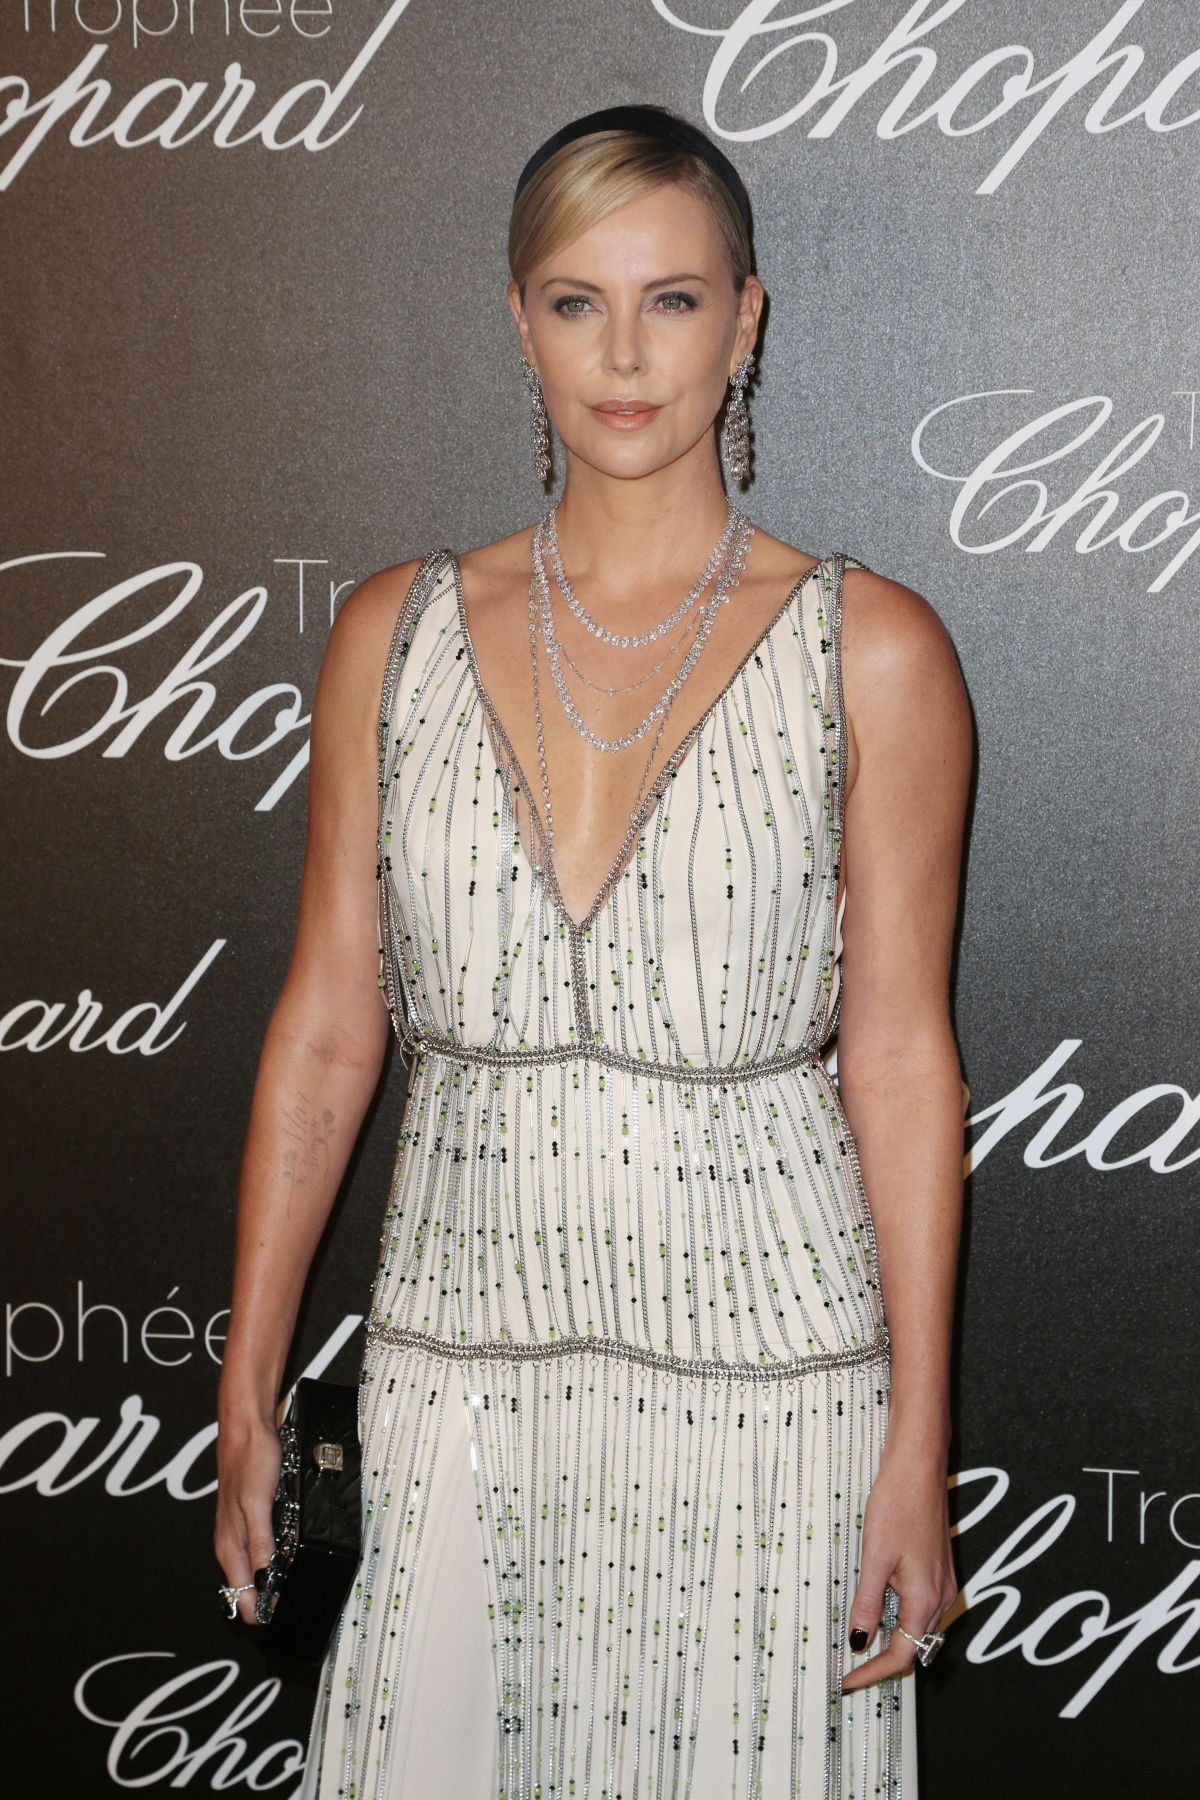 CHARLIZE THERON at Chopard Trophy Event in Cannes 05/22/2017